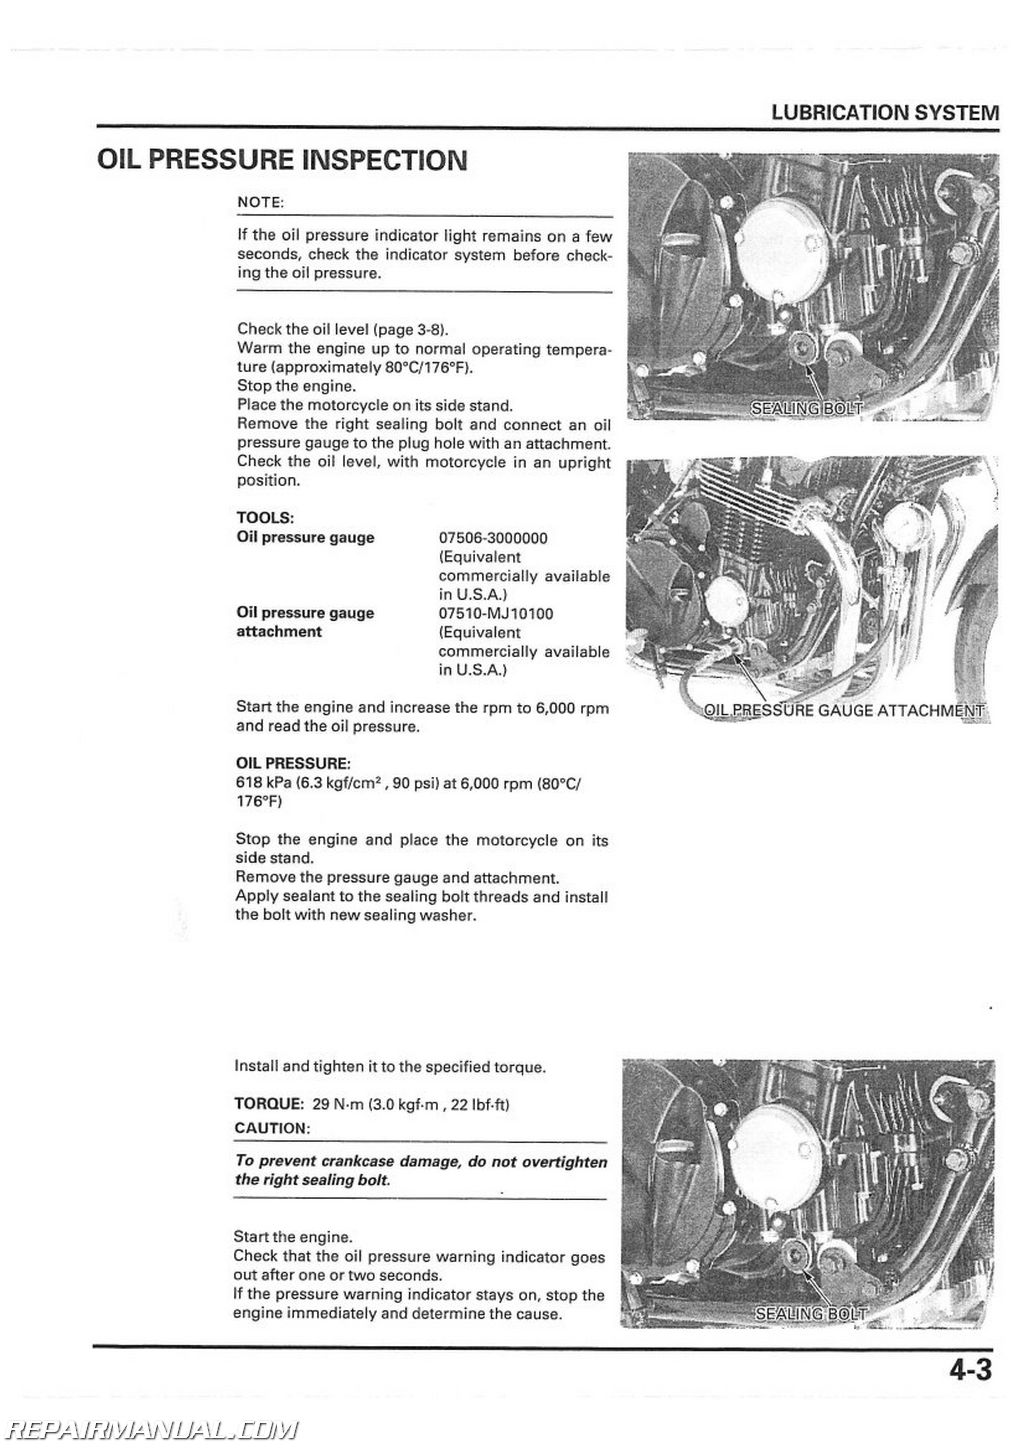 2000 2003 Honda Cb750 Nighthawk Motorcycle Service Manual Engine Repair